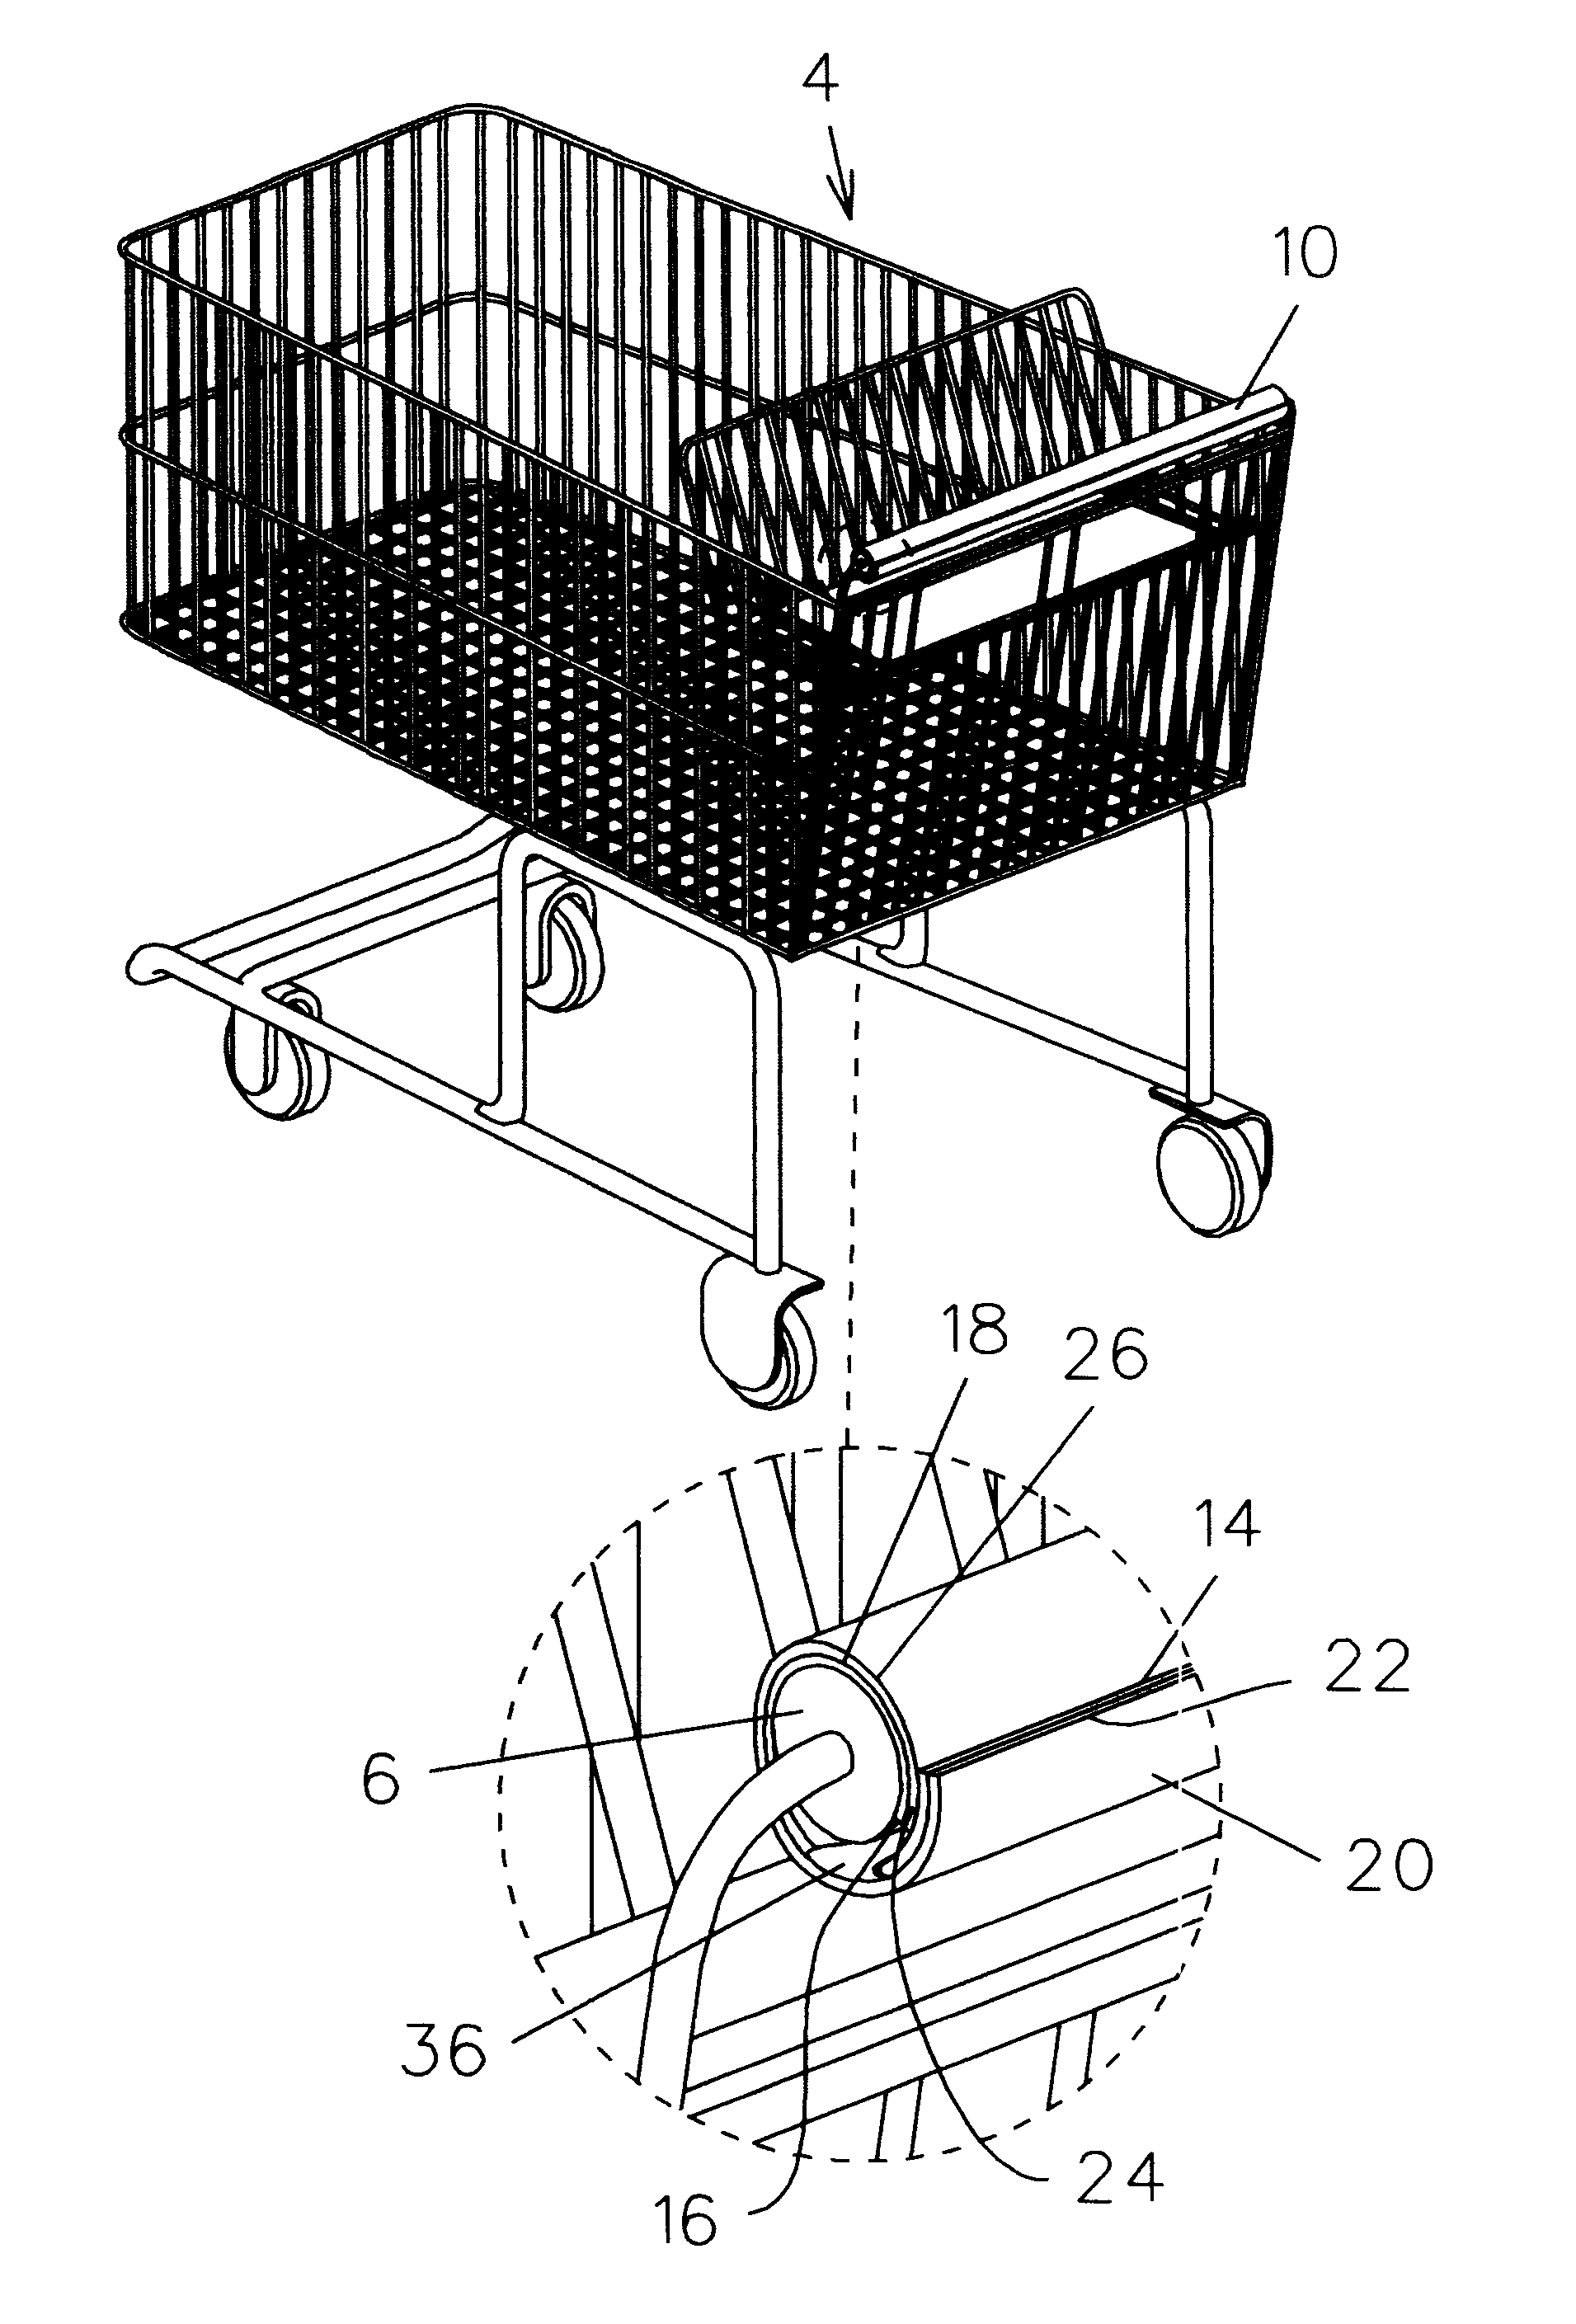 Questionnaire of shopping cart handle cover